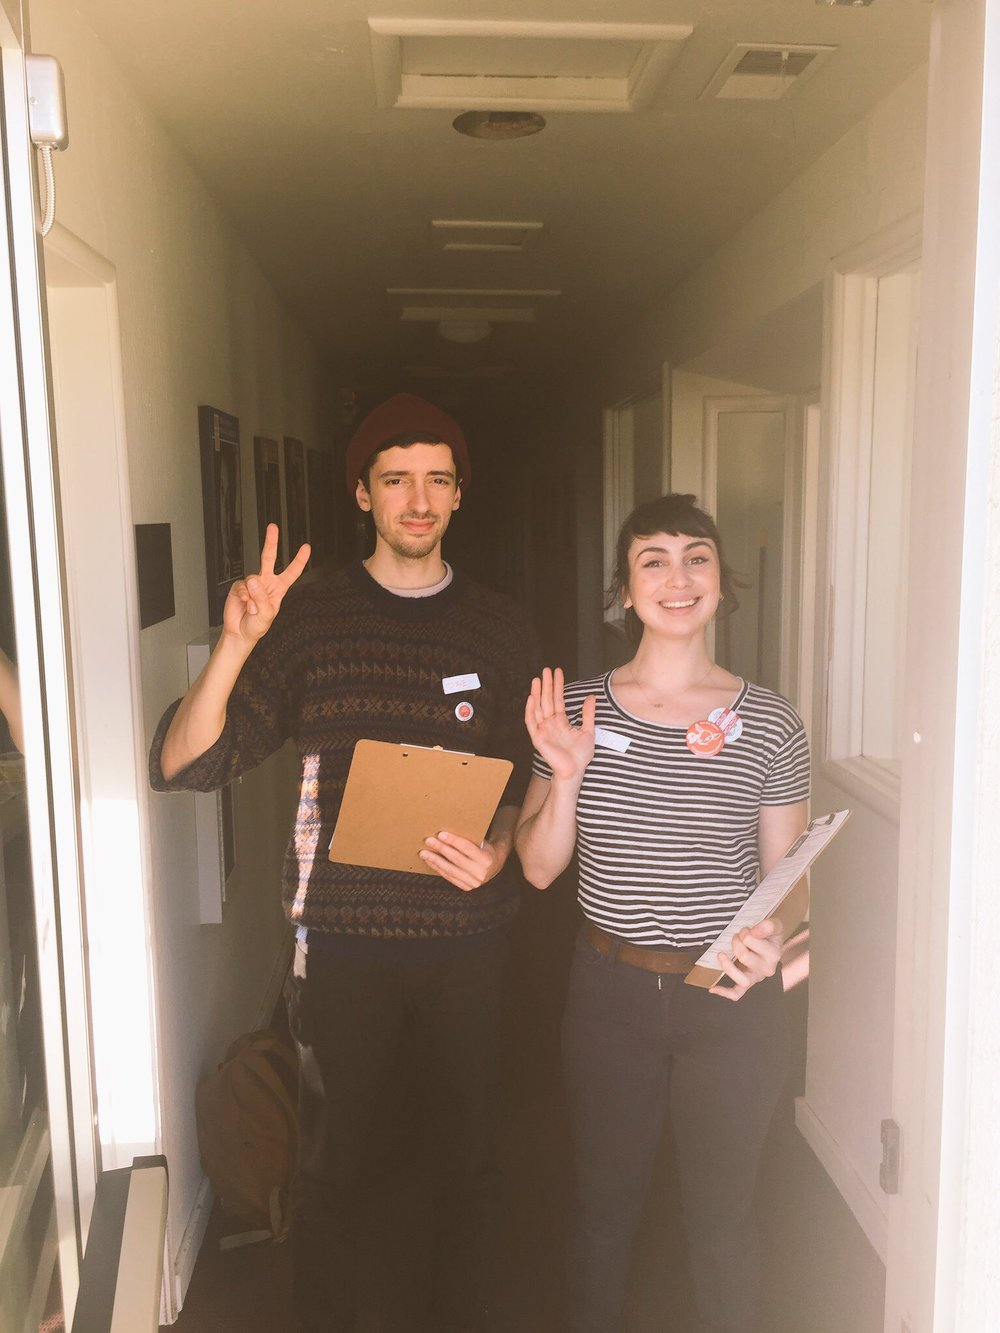 Two DSA members about to canvass